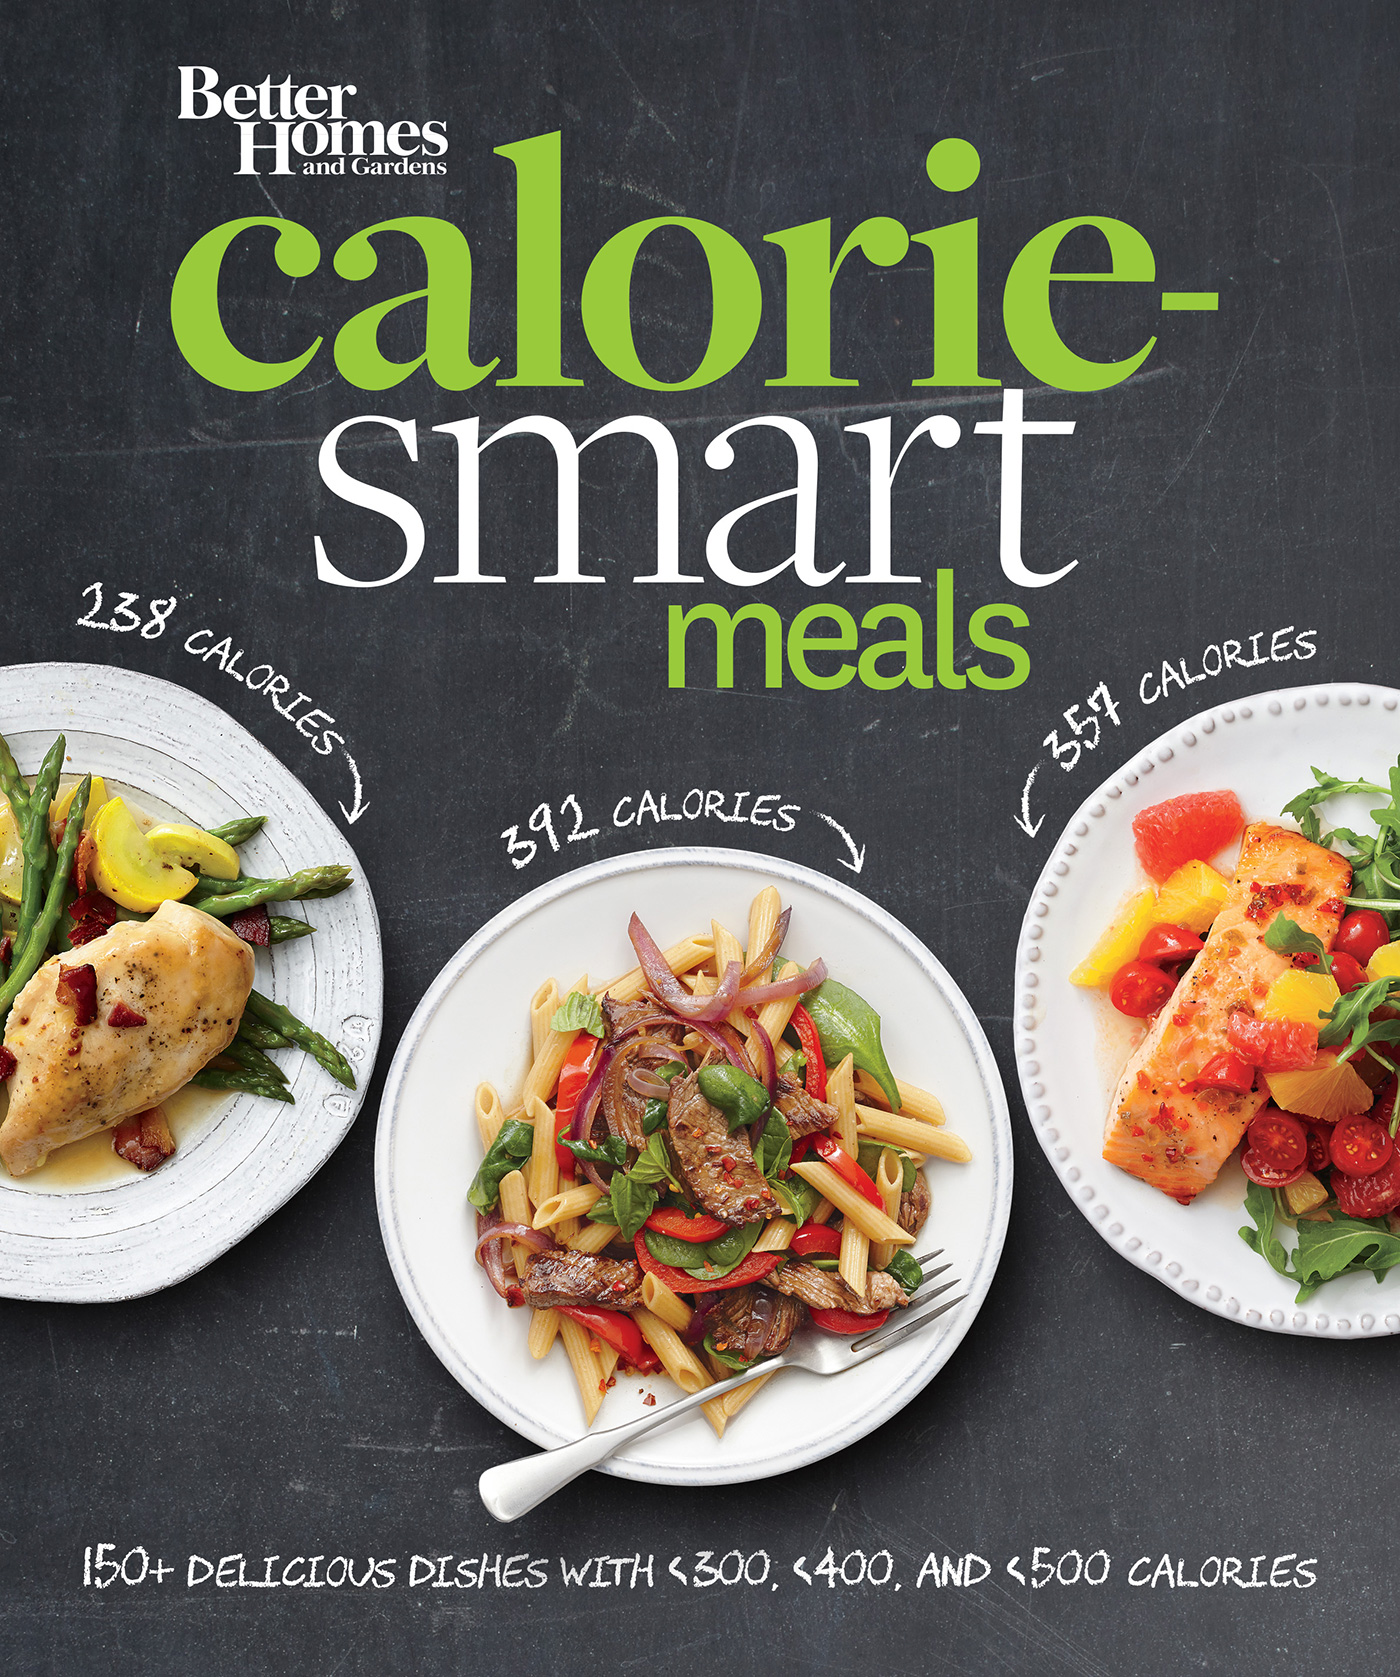 Better Homes and Gardens Calorie-Smart Meals-9780544569829